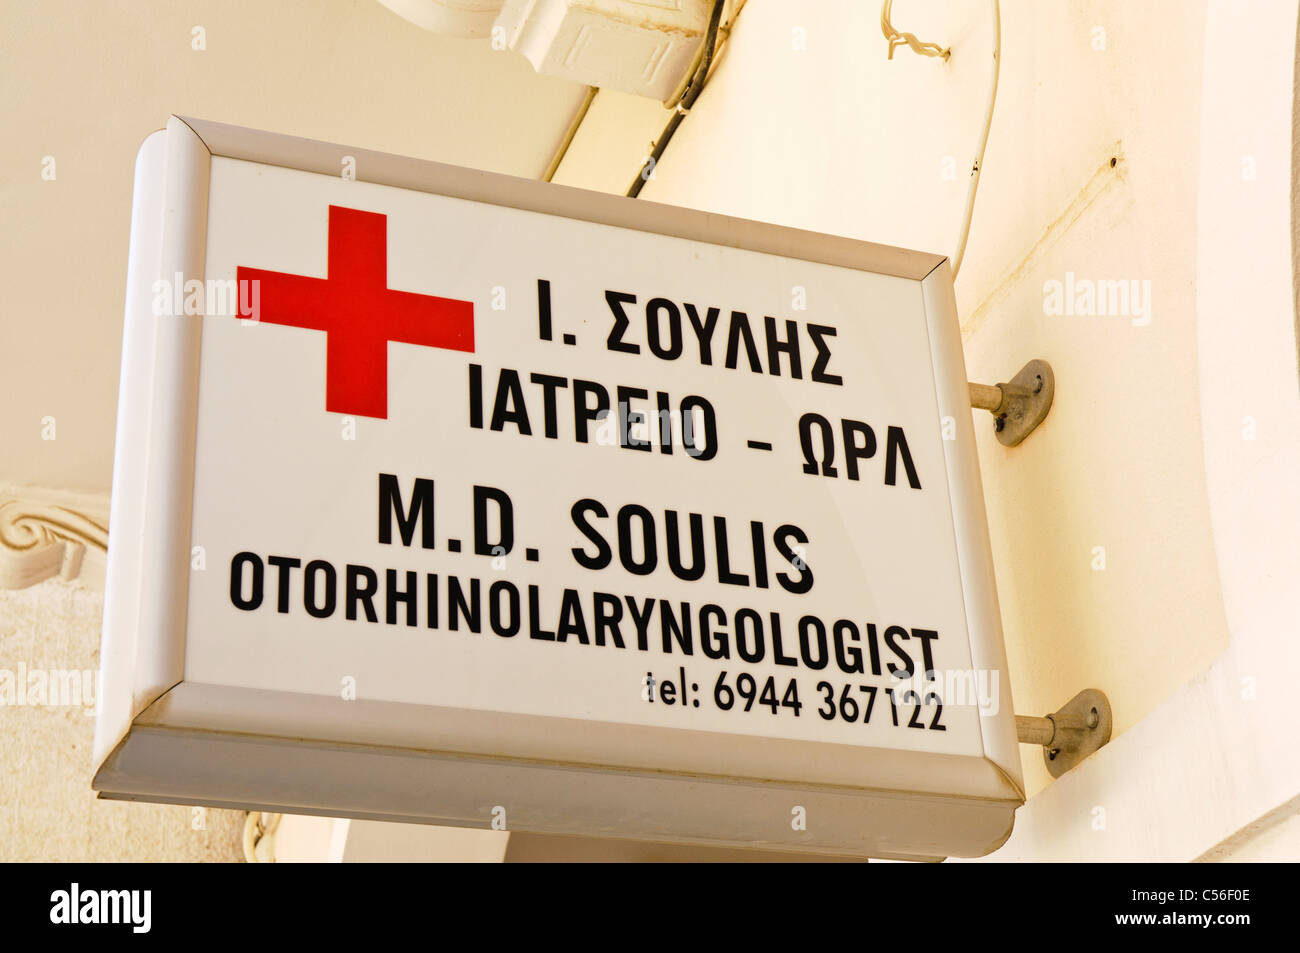 Sign for an Ear, Nose and Throat consultant in Greek. - Stock Image